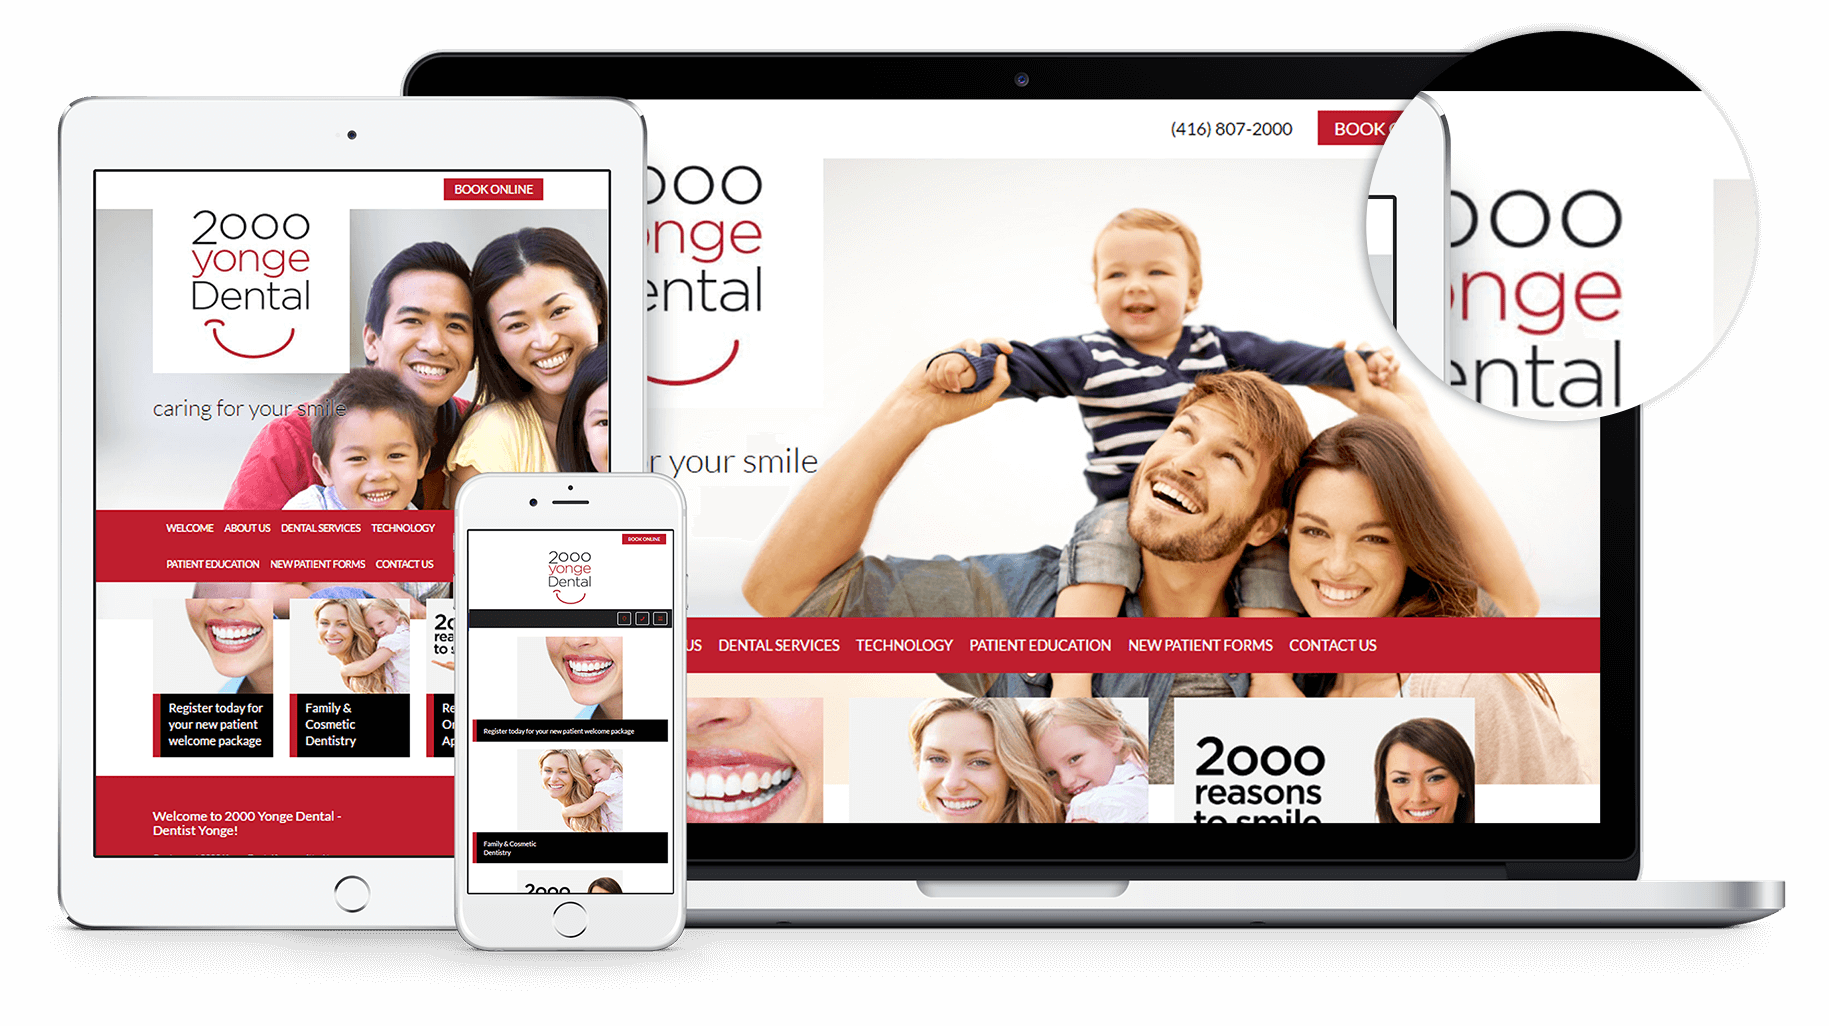 New Website for 2000 Yonge Dental!